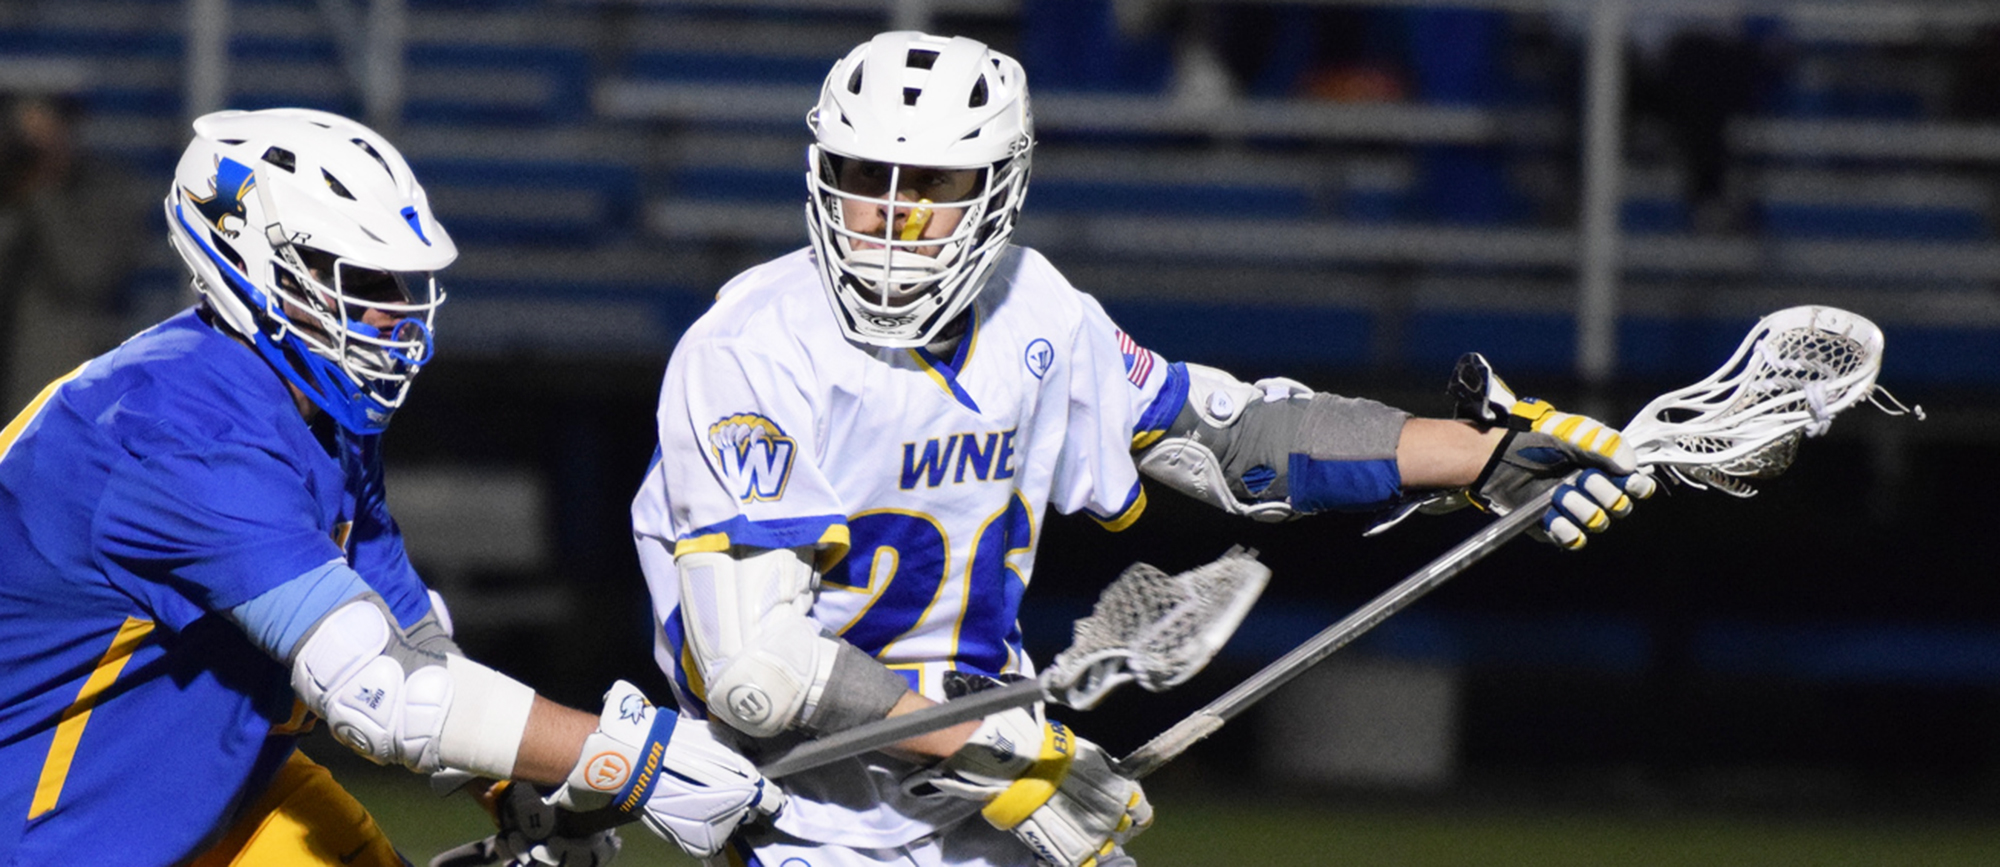 Jared Ward produced a game-high 7 points (4G, 3A) in Western New England's 14-10 win over UNE on Saturday. (Photo by Rachael Margossian)